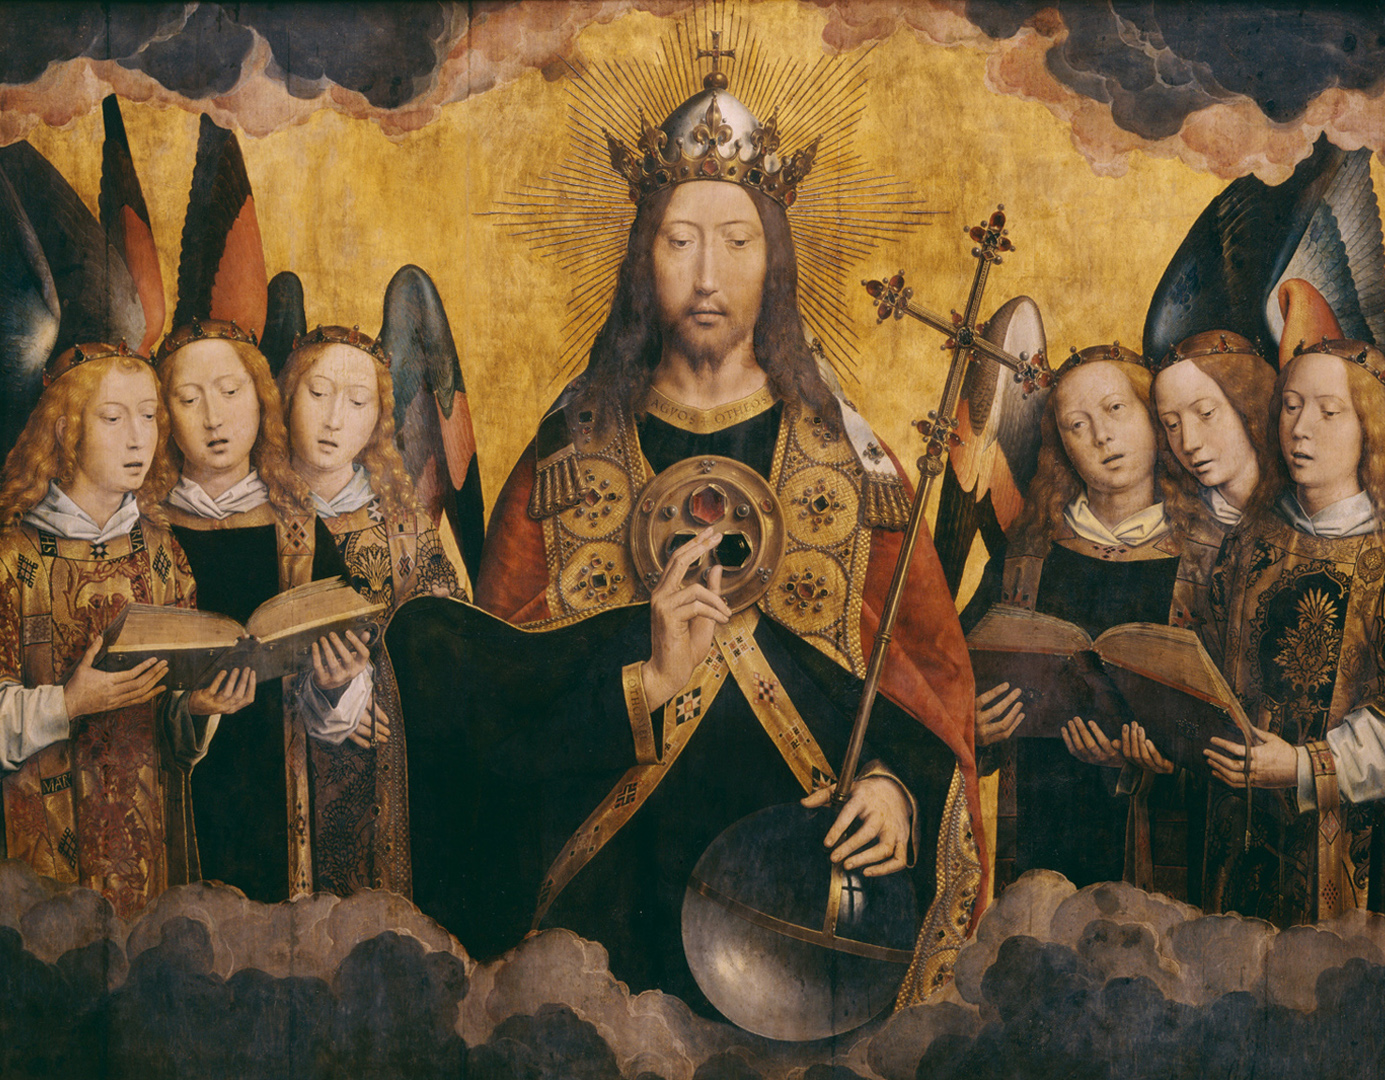 Hans_Memling - Christ with Singing Angels